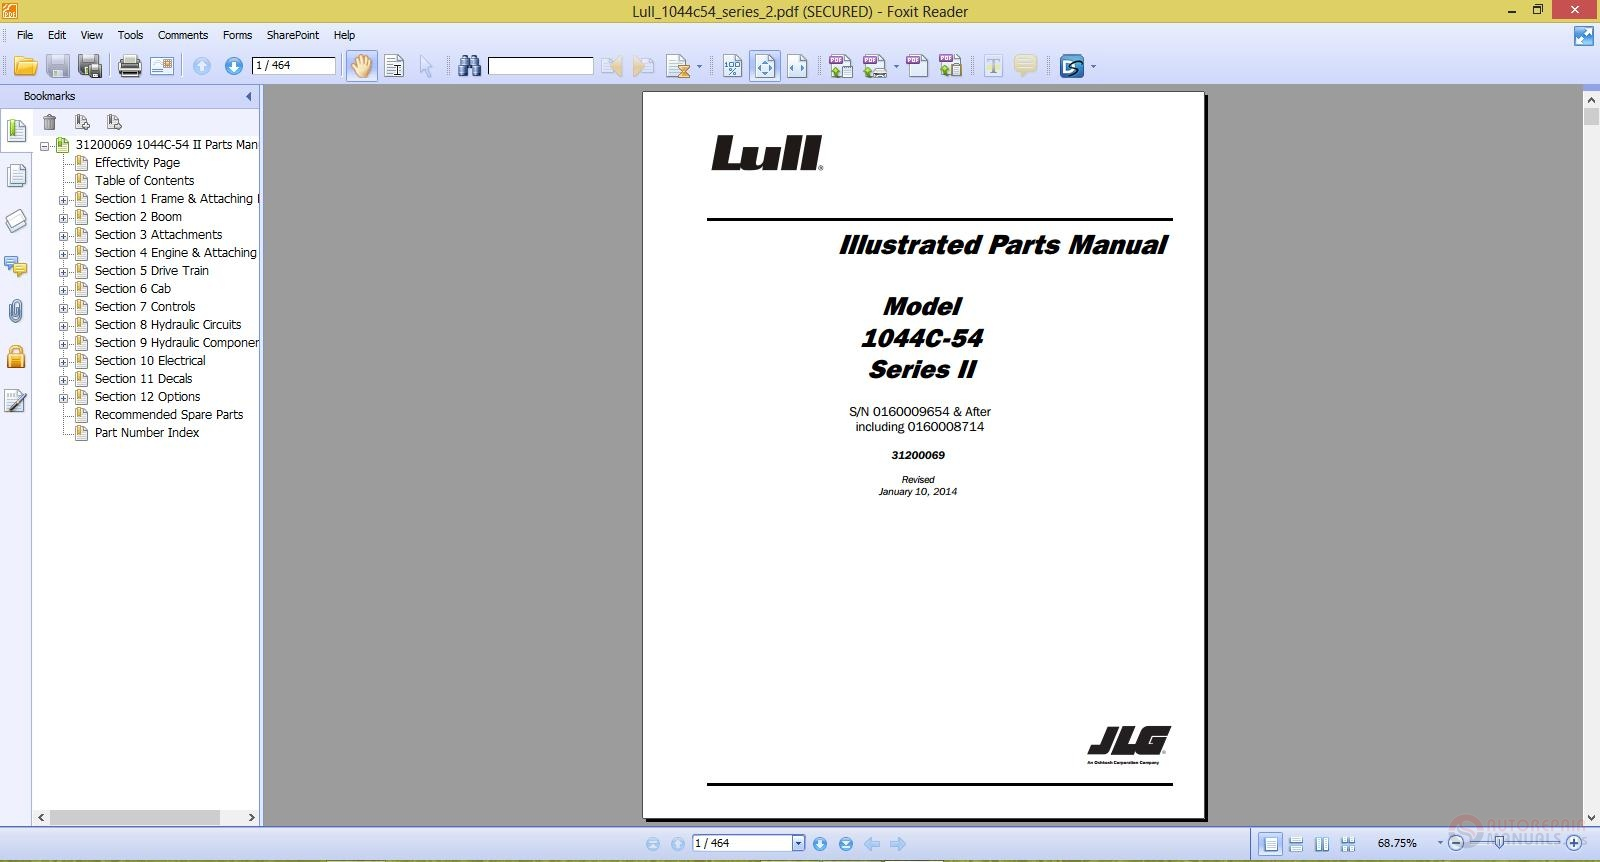 jlg lull 1044c 54 series ii illustrated parts manual auto repair jlg lull 1044c 54 series ii illustrated parts manual size 26 2mb language english type pdf pages 464